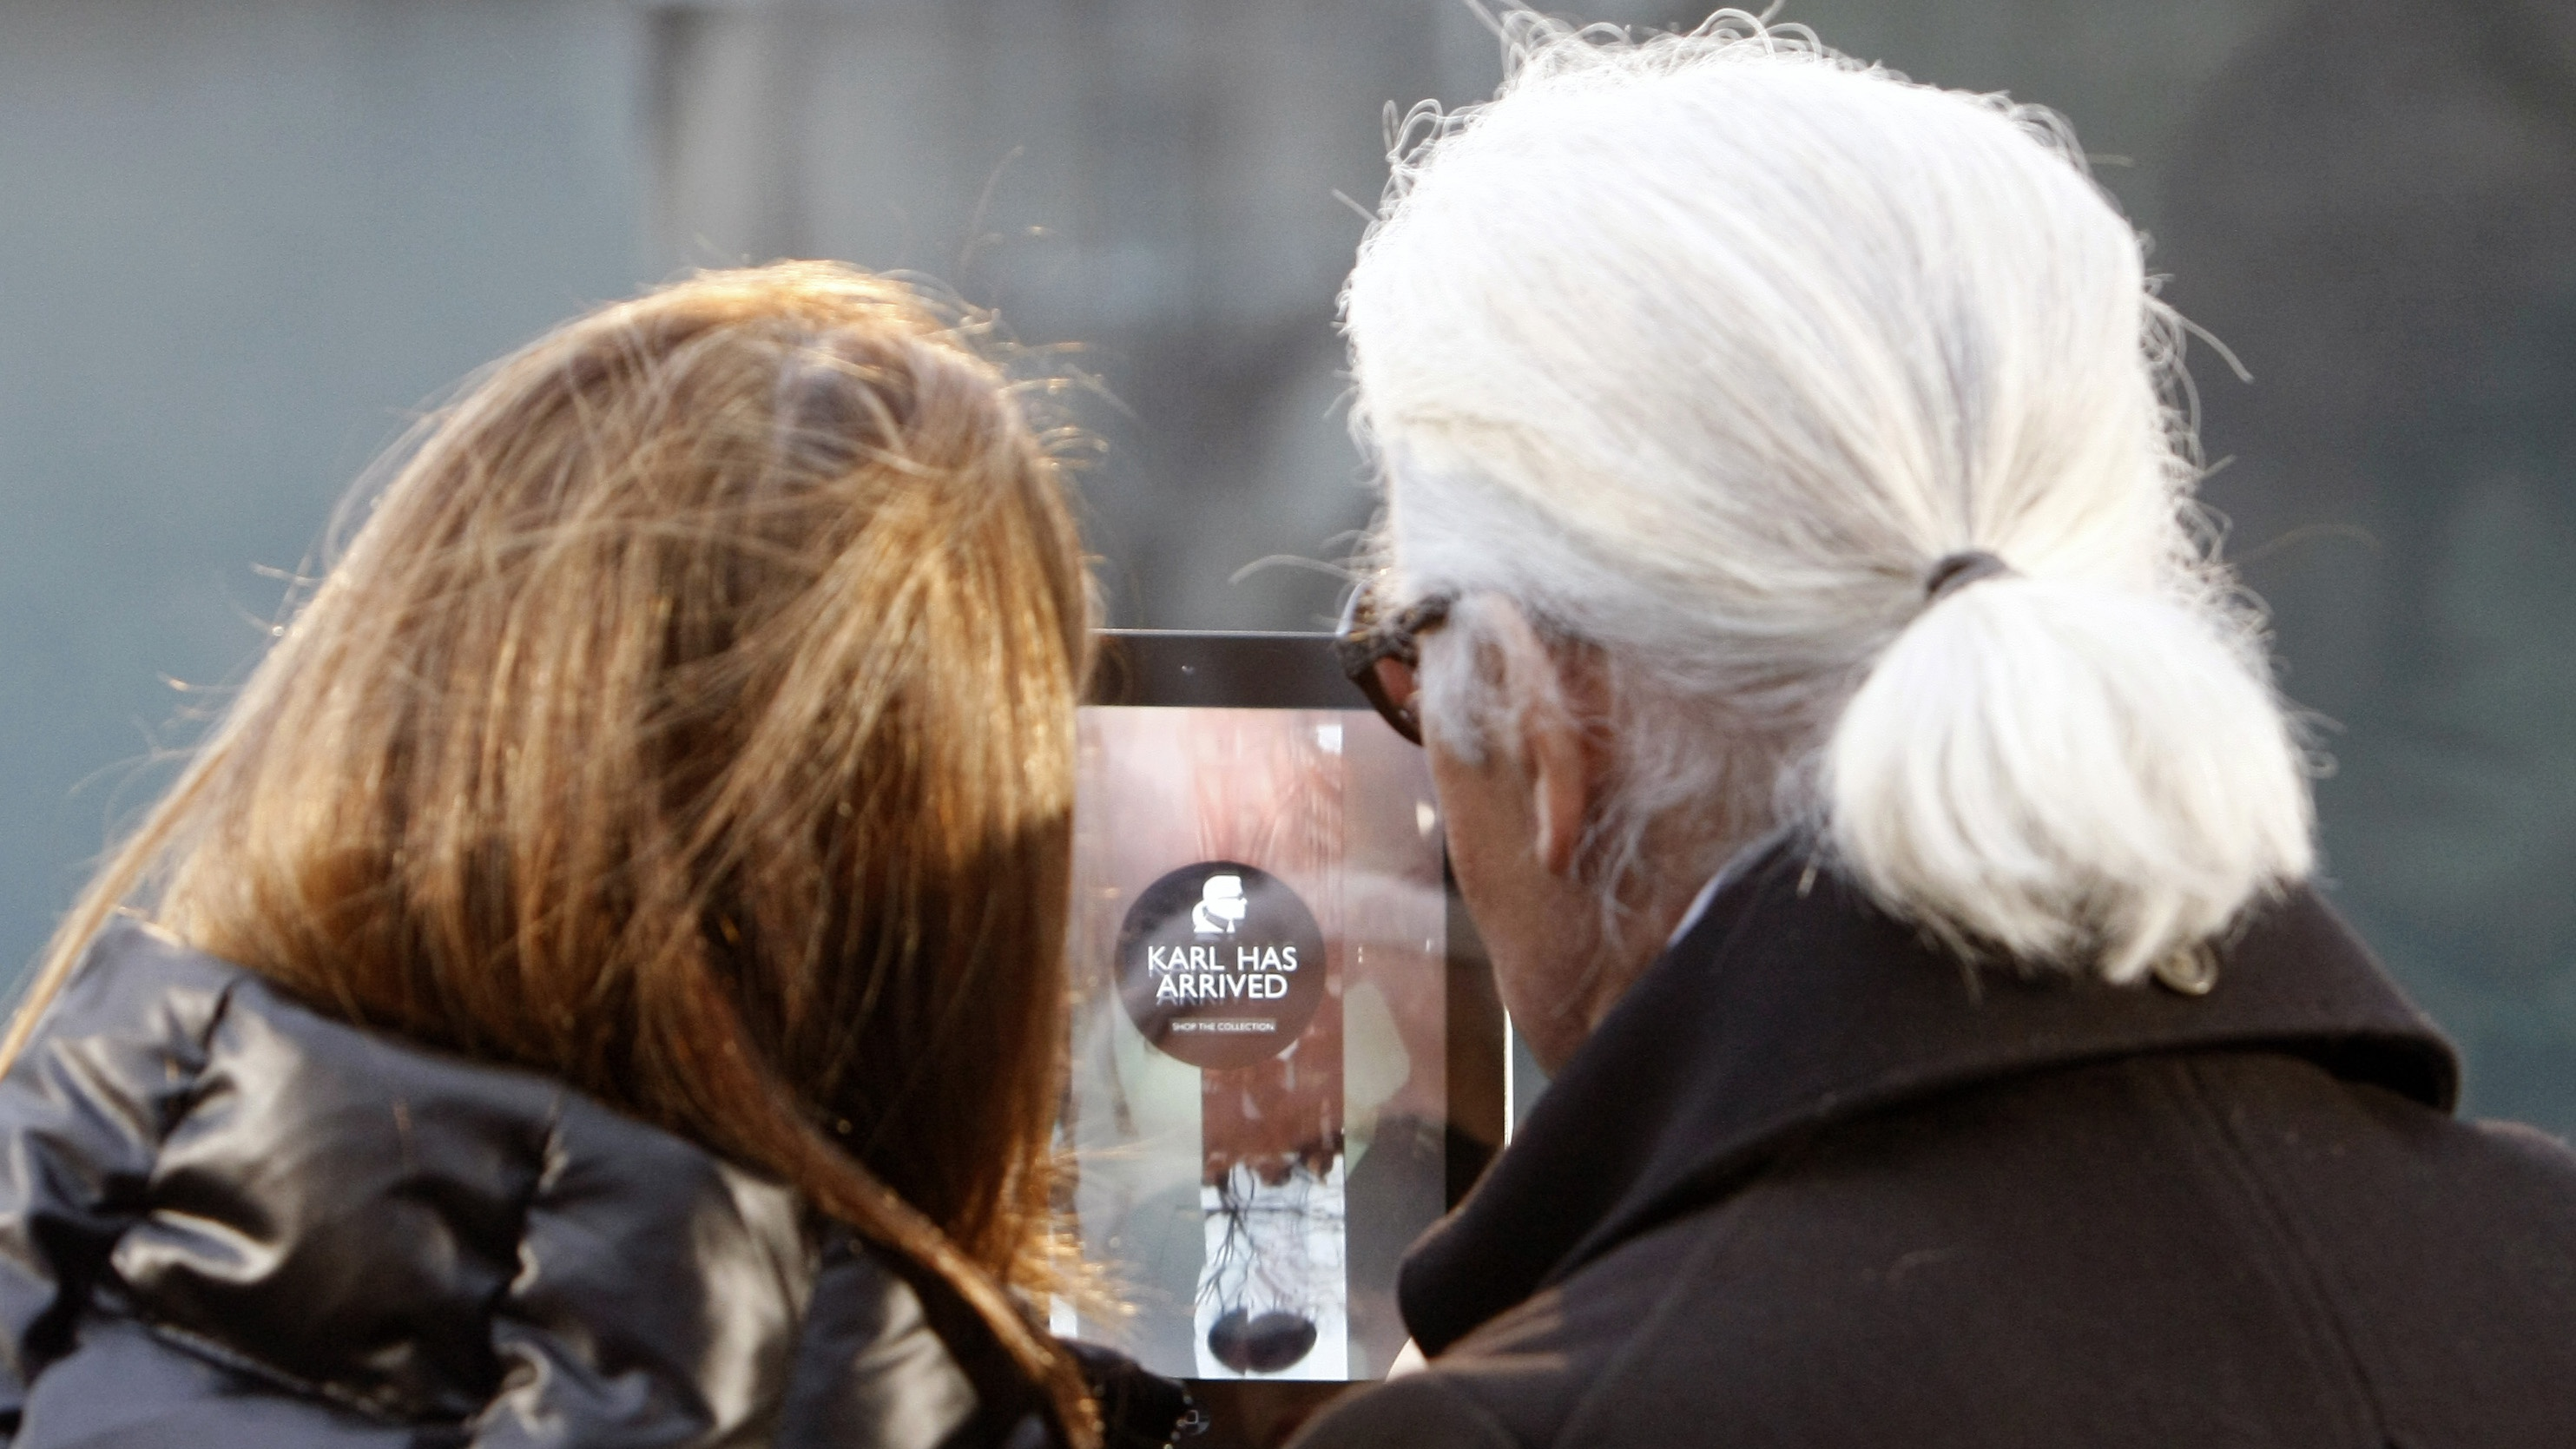 German fashion designer Karl Lagerfeld, right, with net-a-porter founder Natalie Massenet, left, launch the new line: Karl, at place St. Germain des Pres in Paris, Wednesday Jan. 25, 2012. Karl is a collection of covetable downtown classics available on the internet.